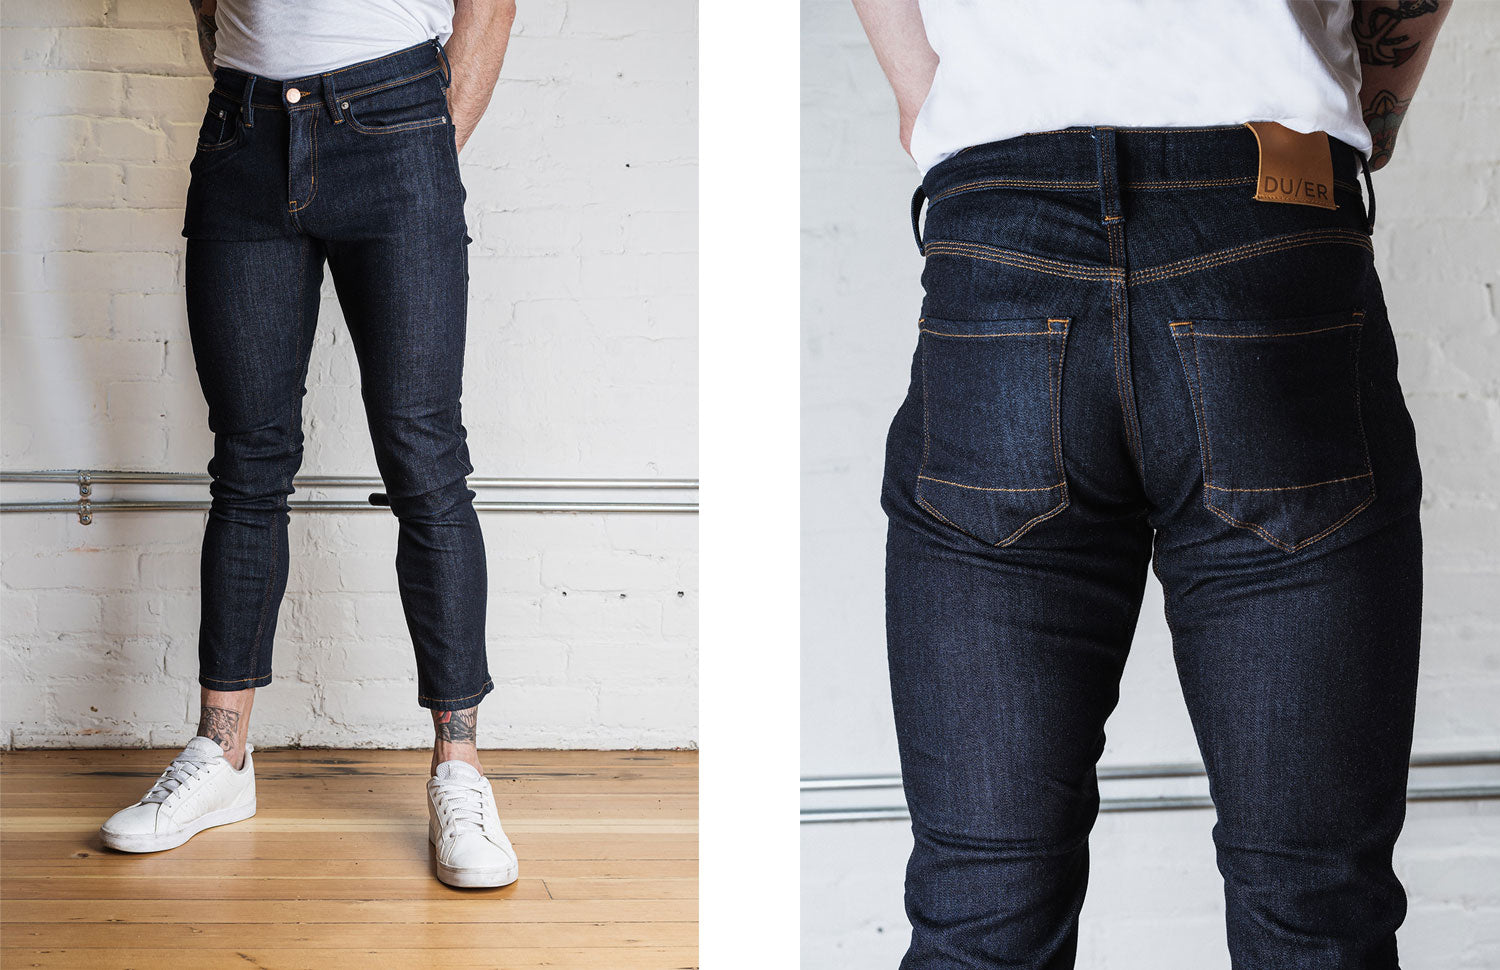 how shoude jeans fit on leg for men